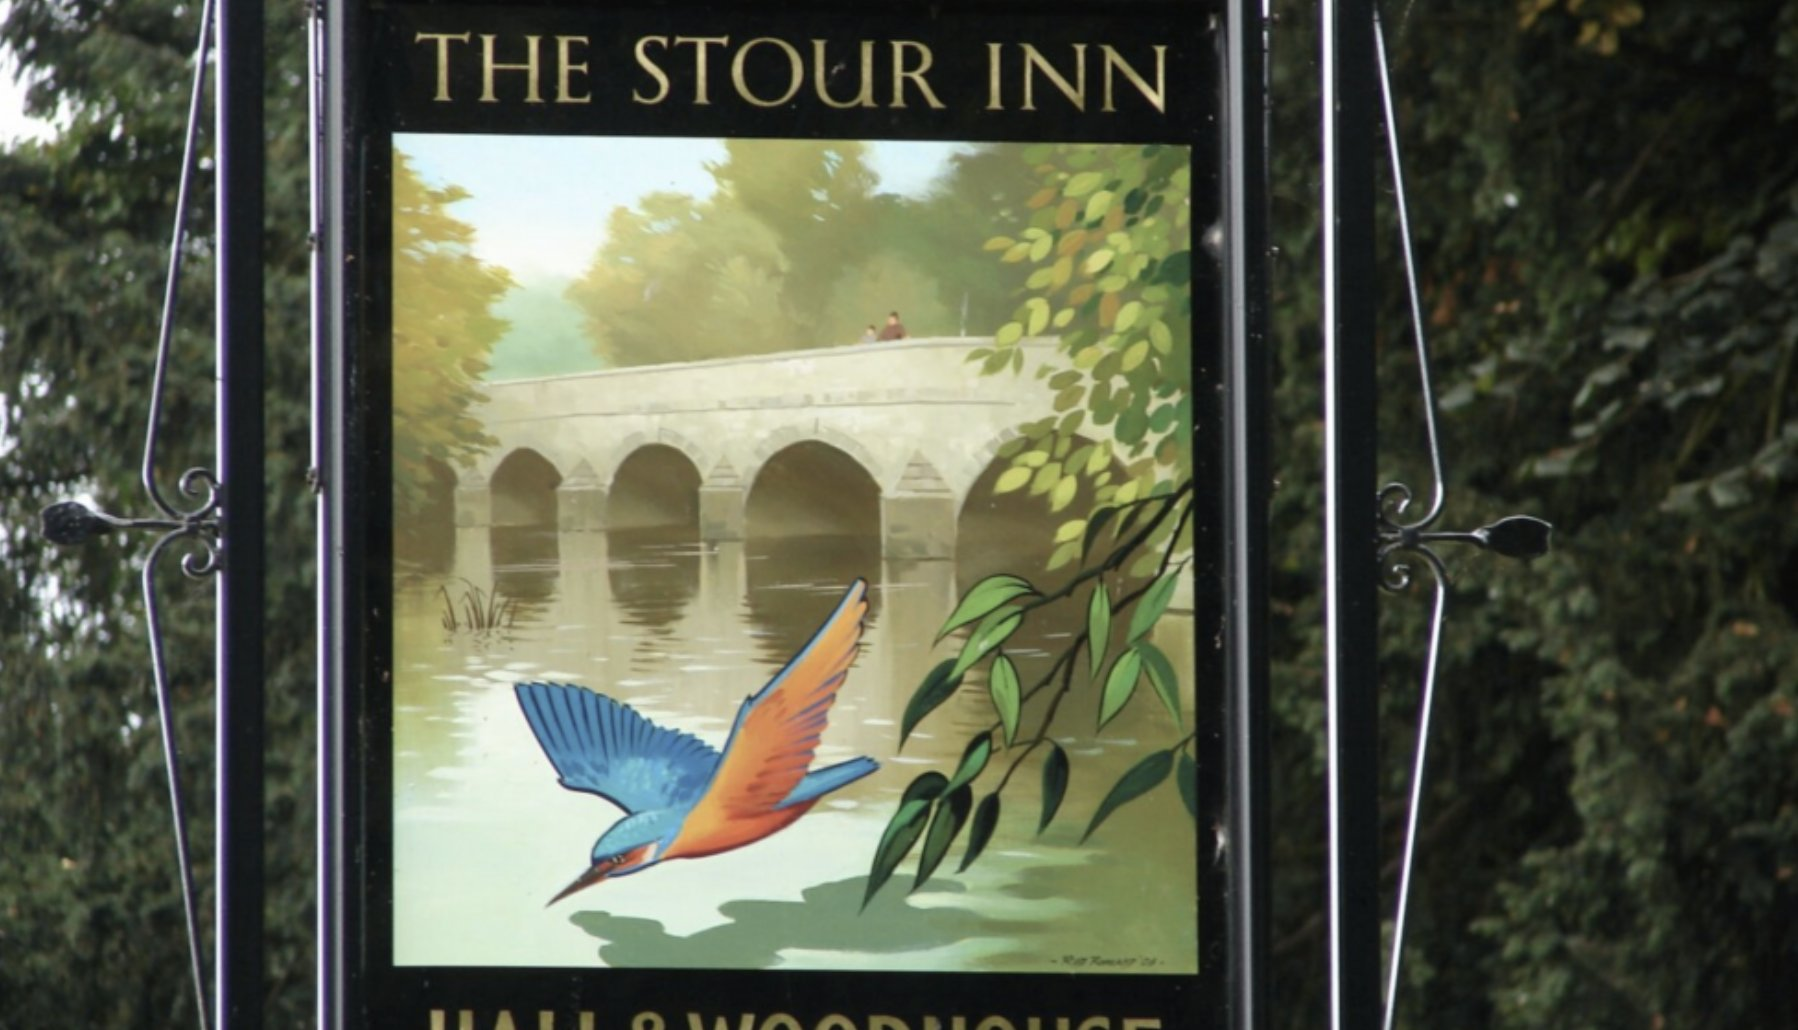 Pubs on the Market - The Stour Inn Blandford St Mary